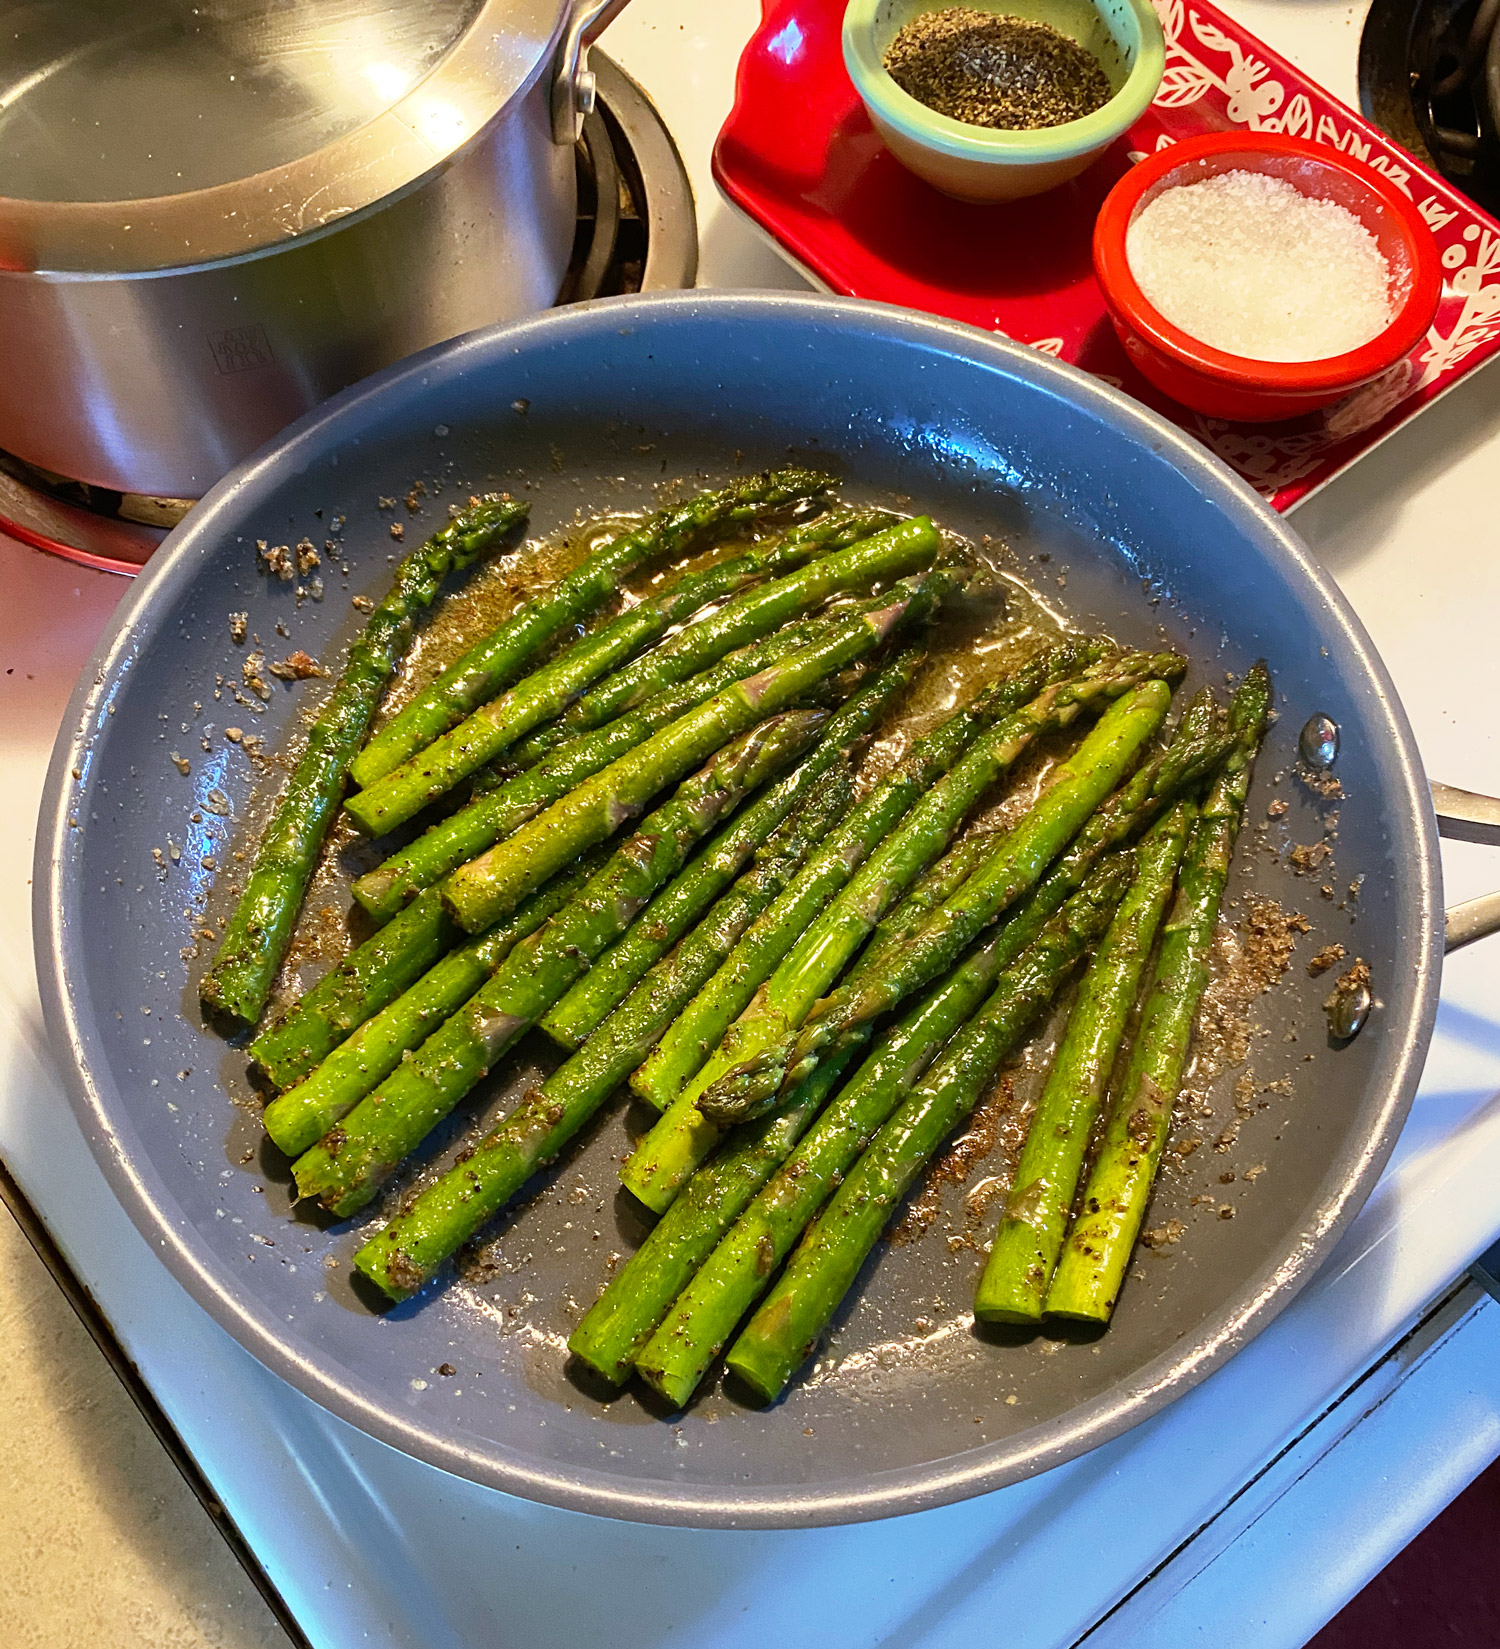 Asparagus and Provolone Melts